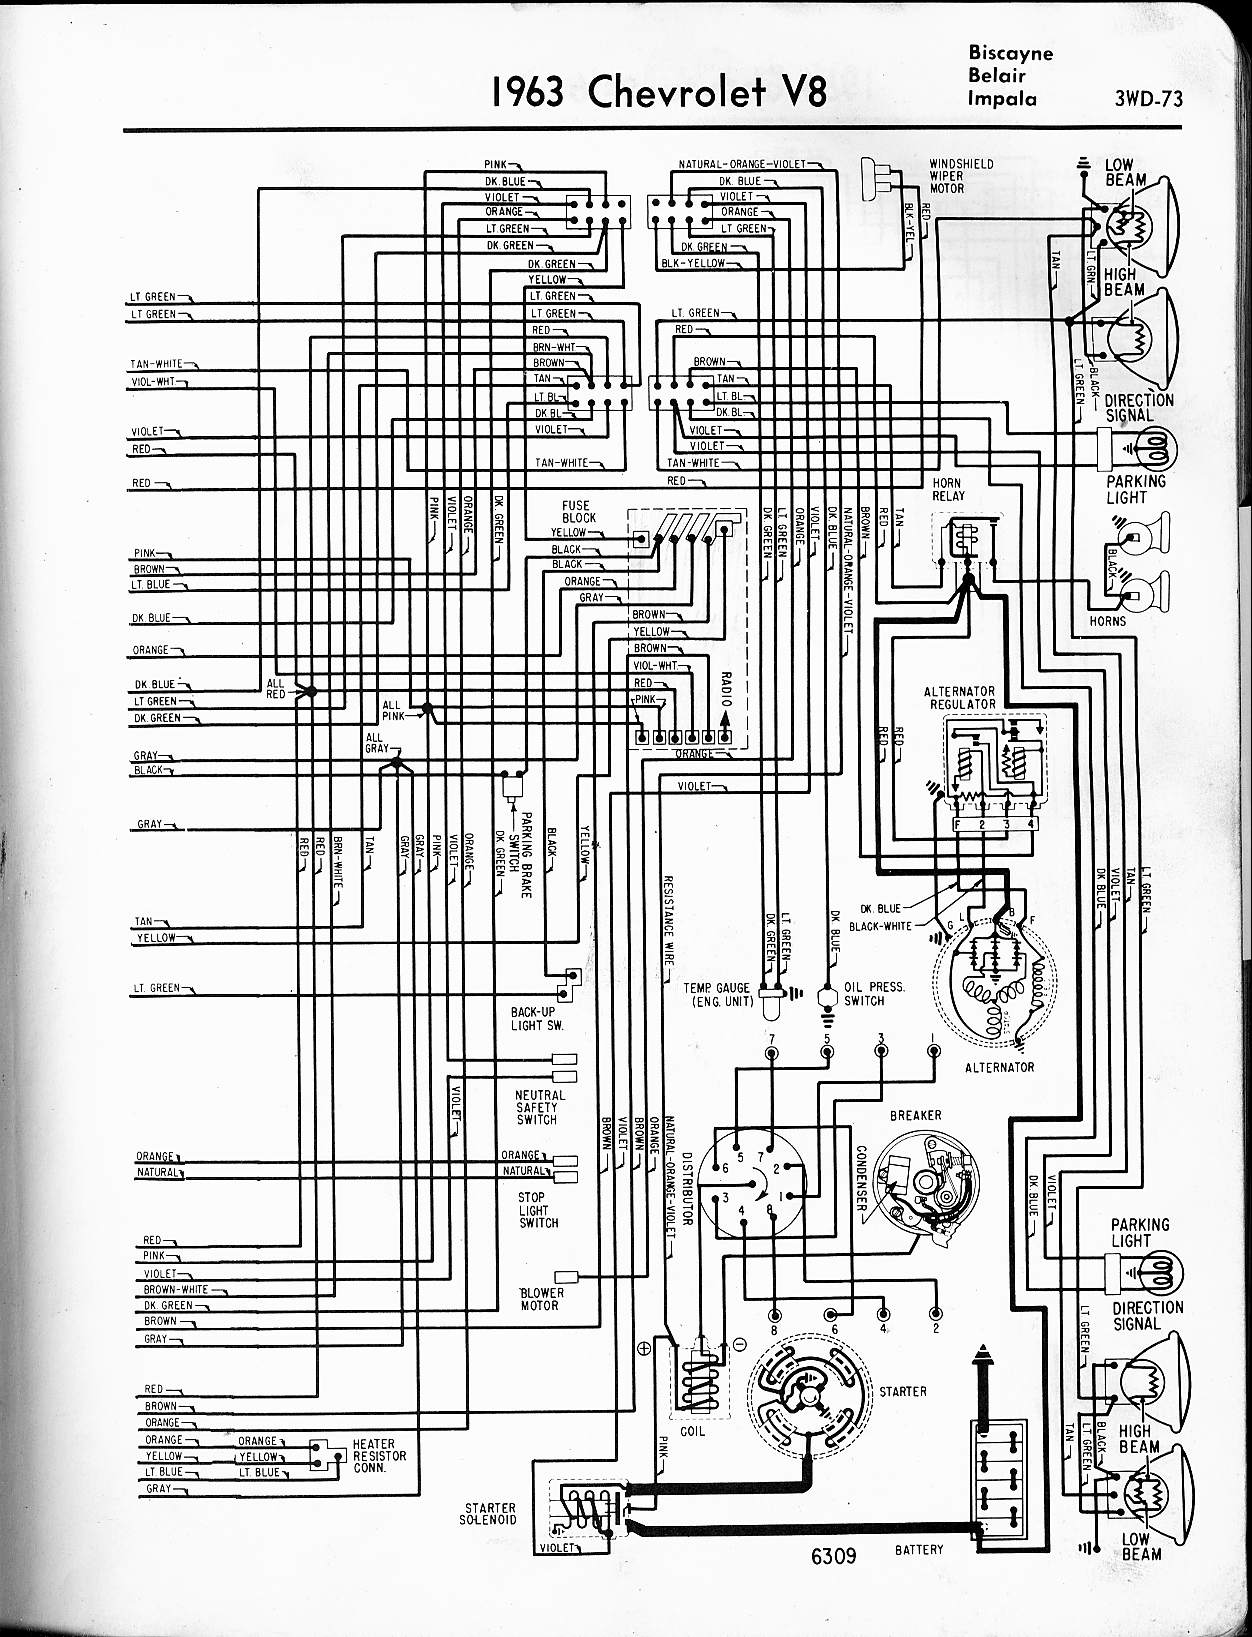 hight resolution of under dash wiring harness 1970 impala simple wiring diagramunder dash wiring harness 1970 impala wiring library